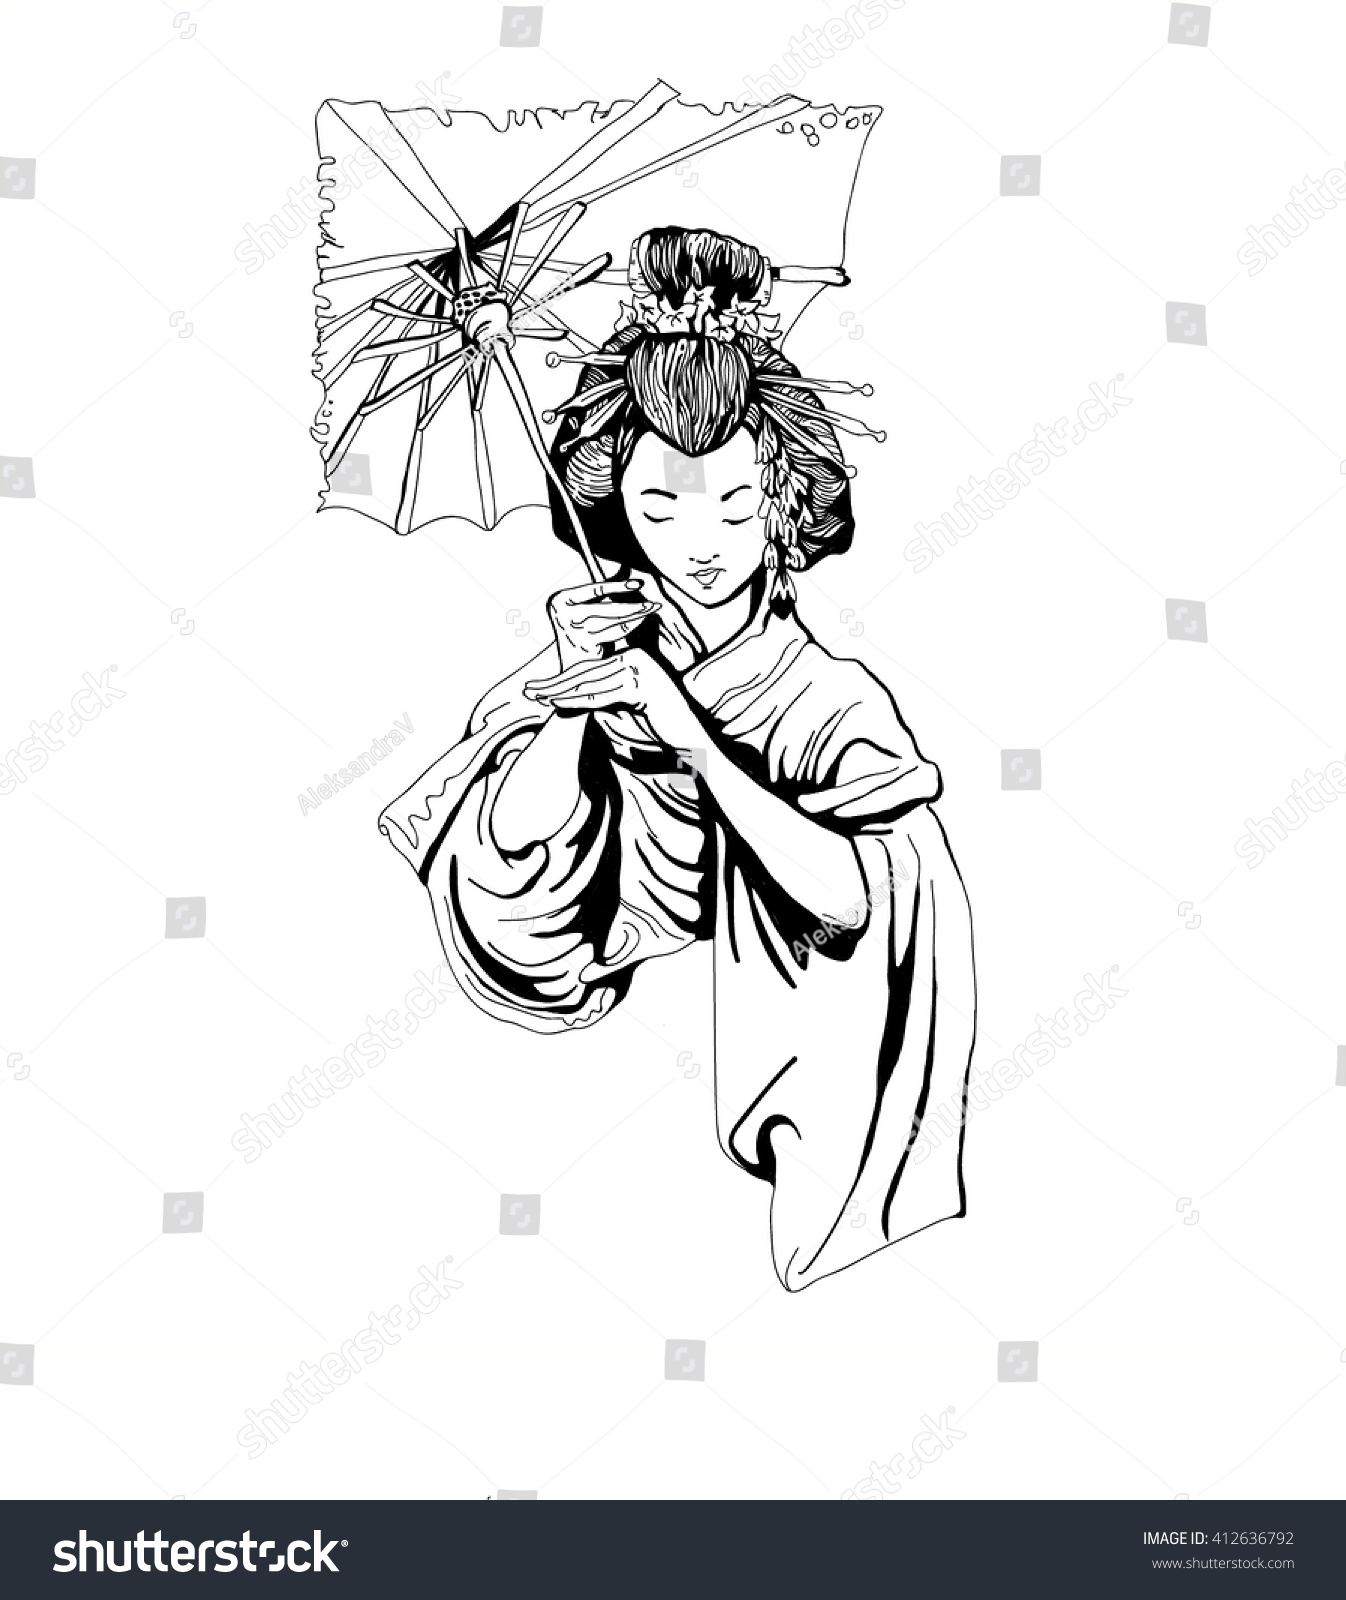 Uncategorized Geisha Girl Drawing japanese geisha girl woman drawing vector stock 412636792 a outline of the hand sketch